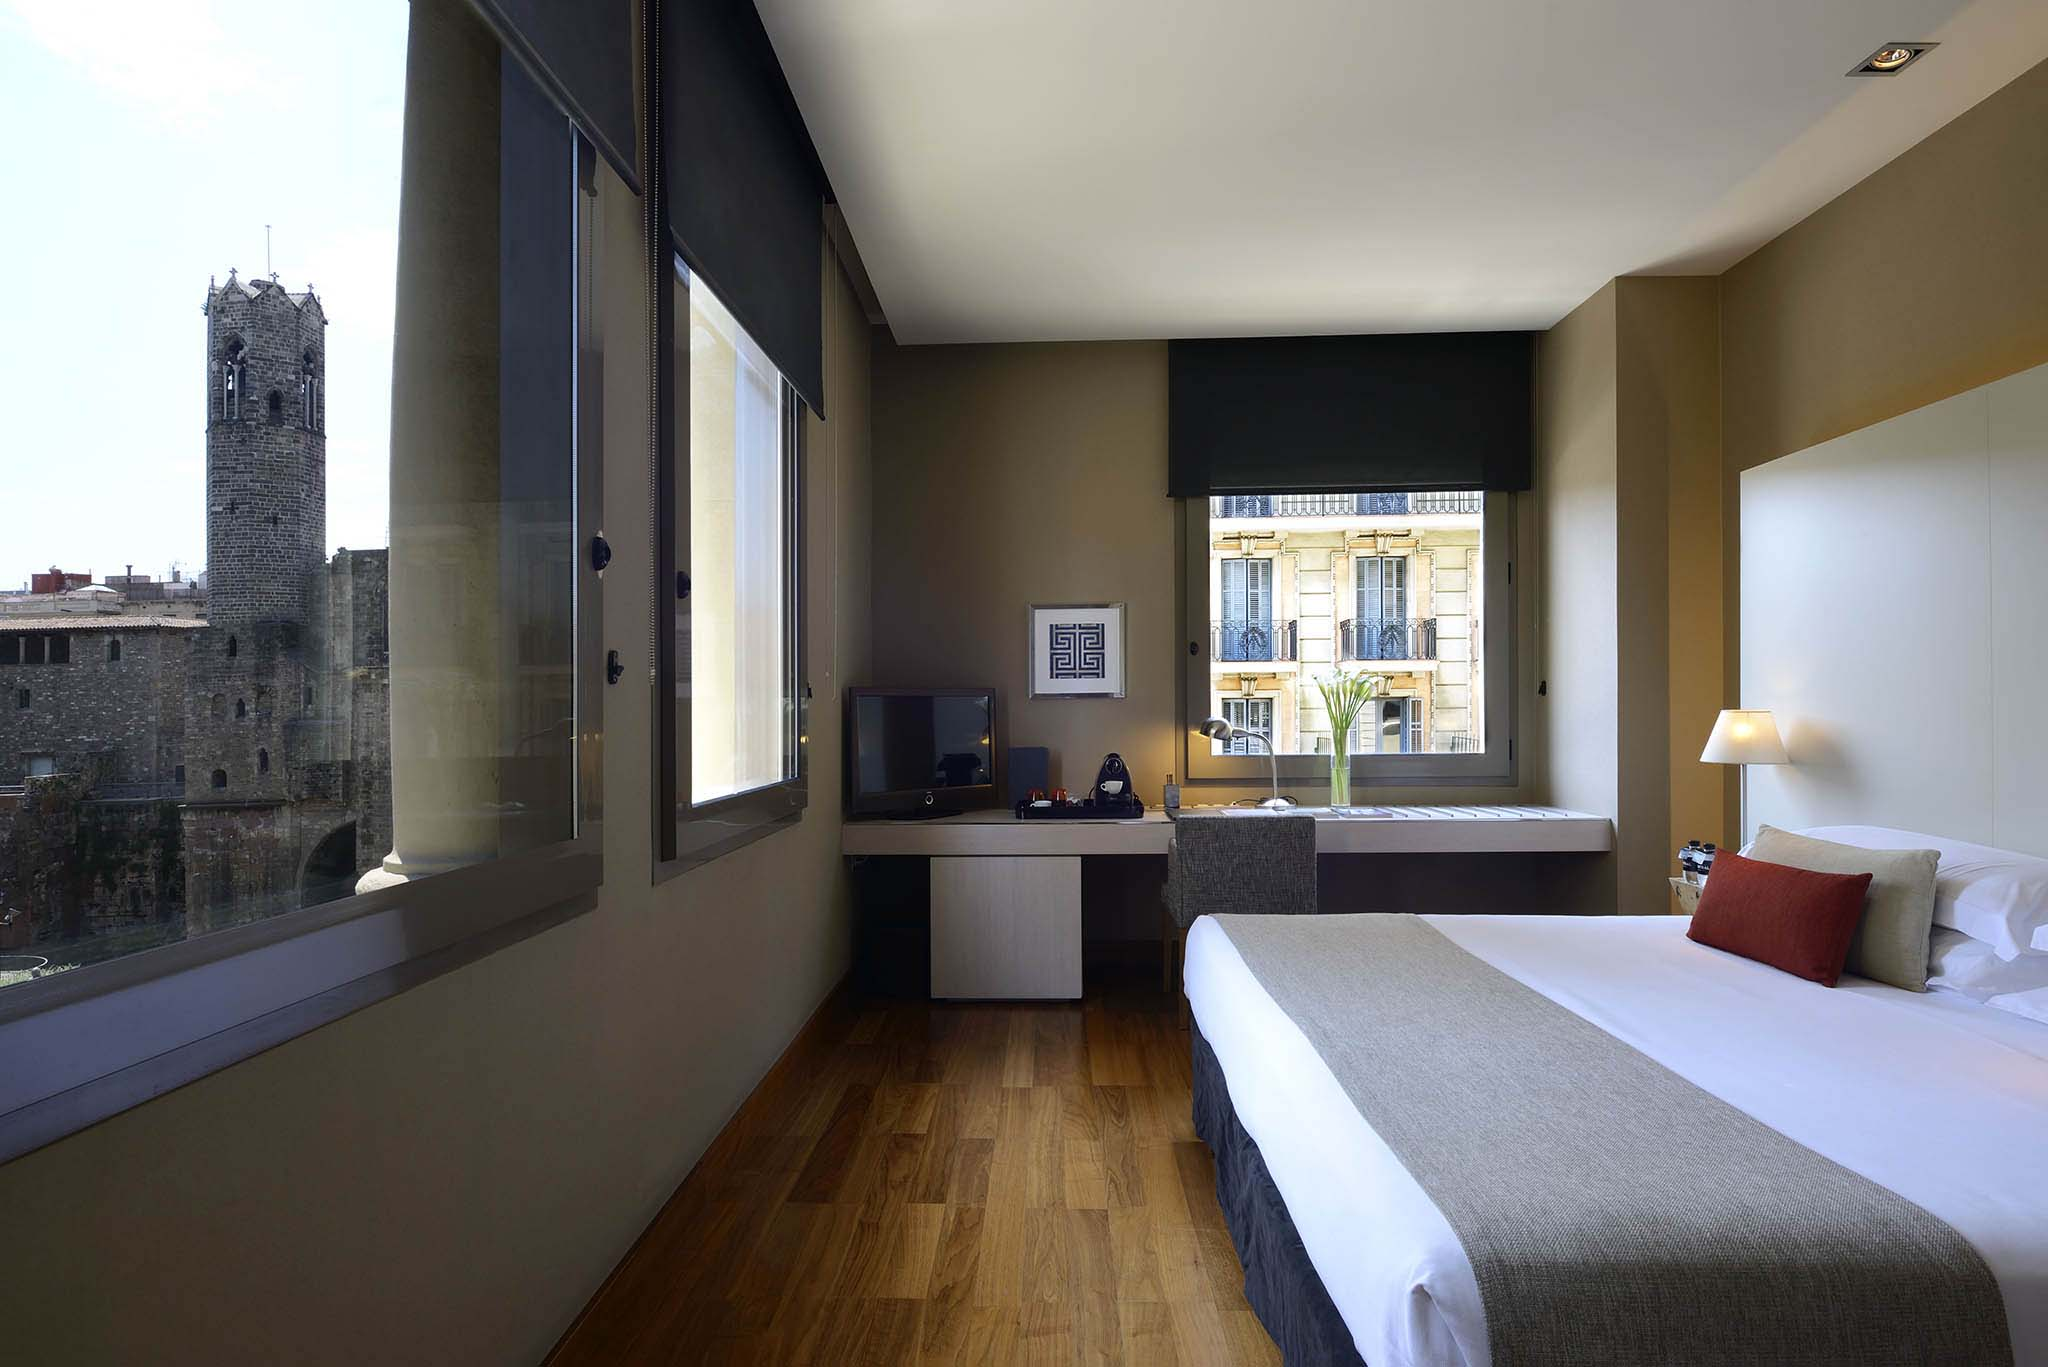 Grand Hotel Barcelona is one of the top luxury hotels in Barcelona with city view rooms